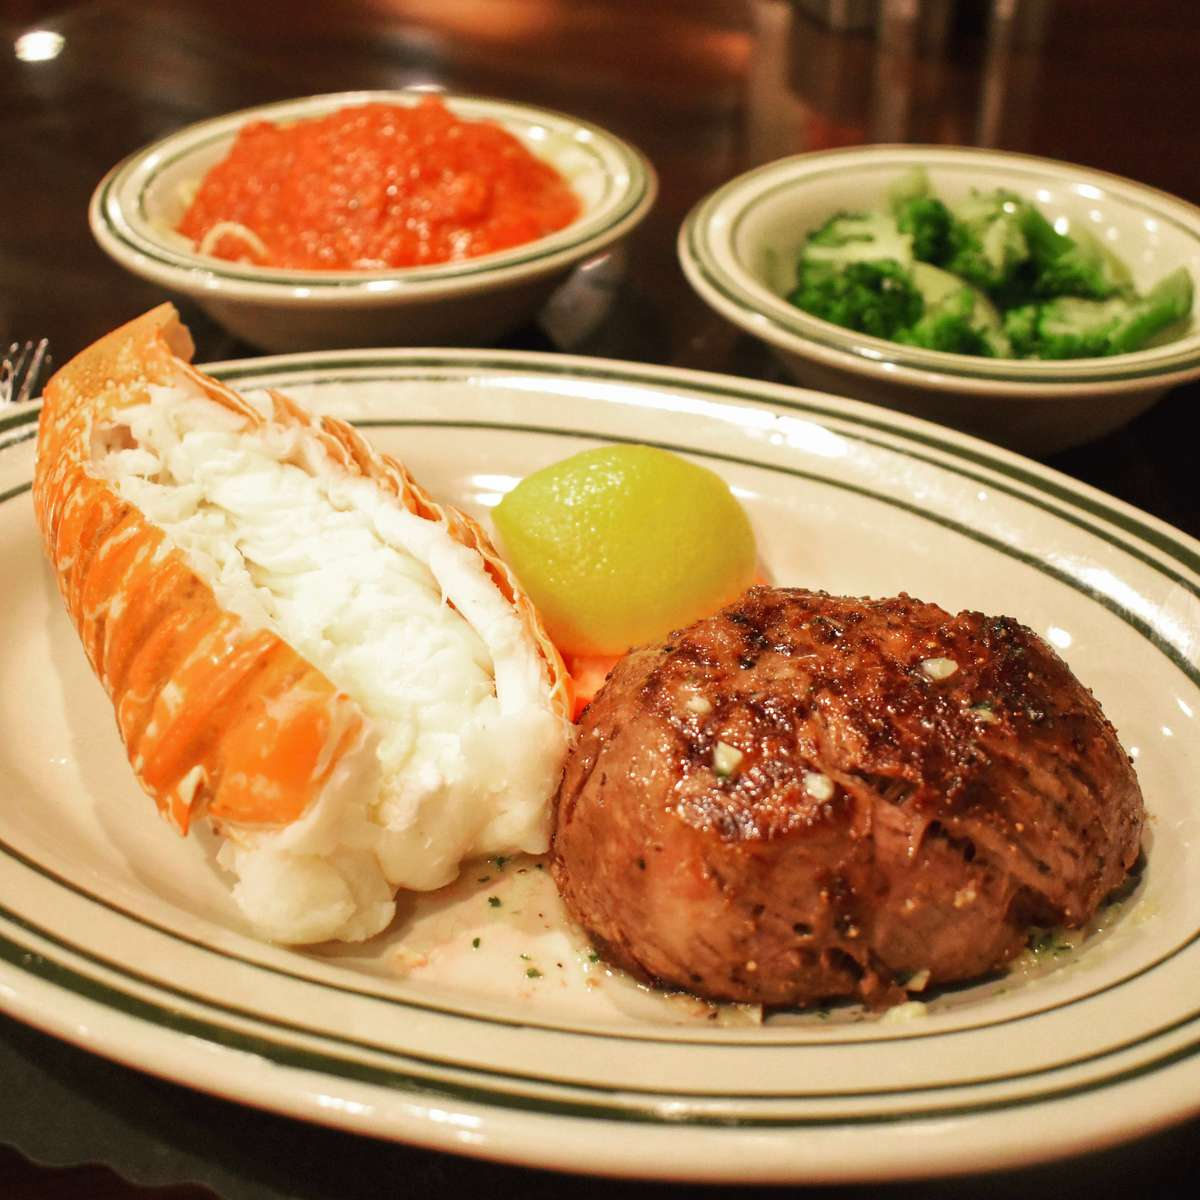 Surf & Turf - Lobster/Steak